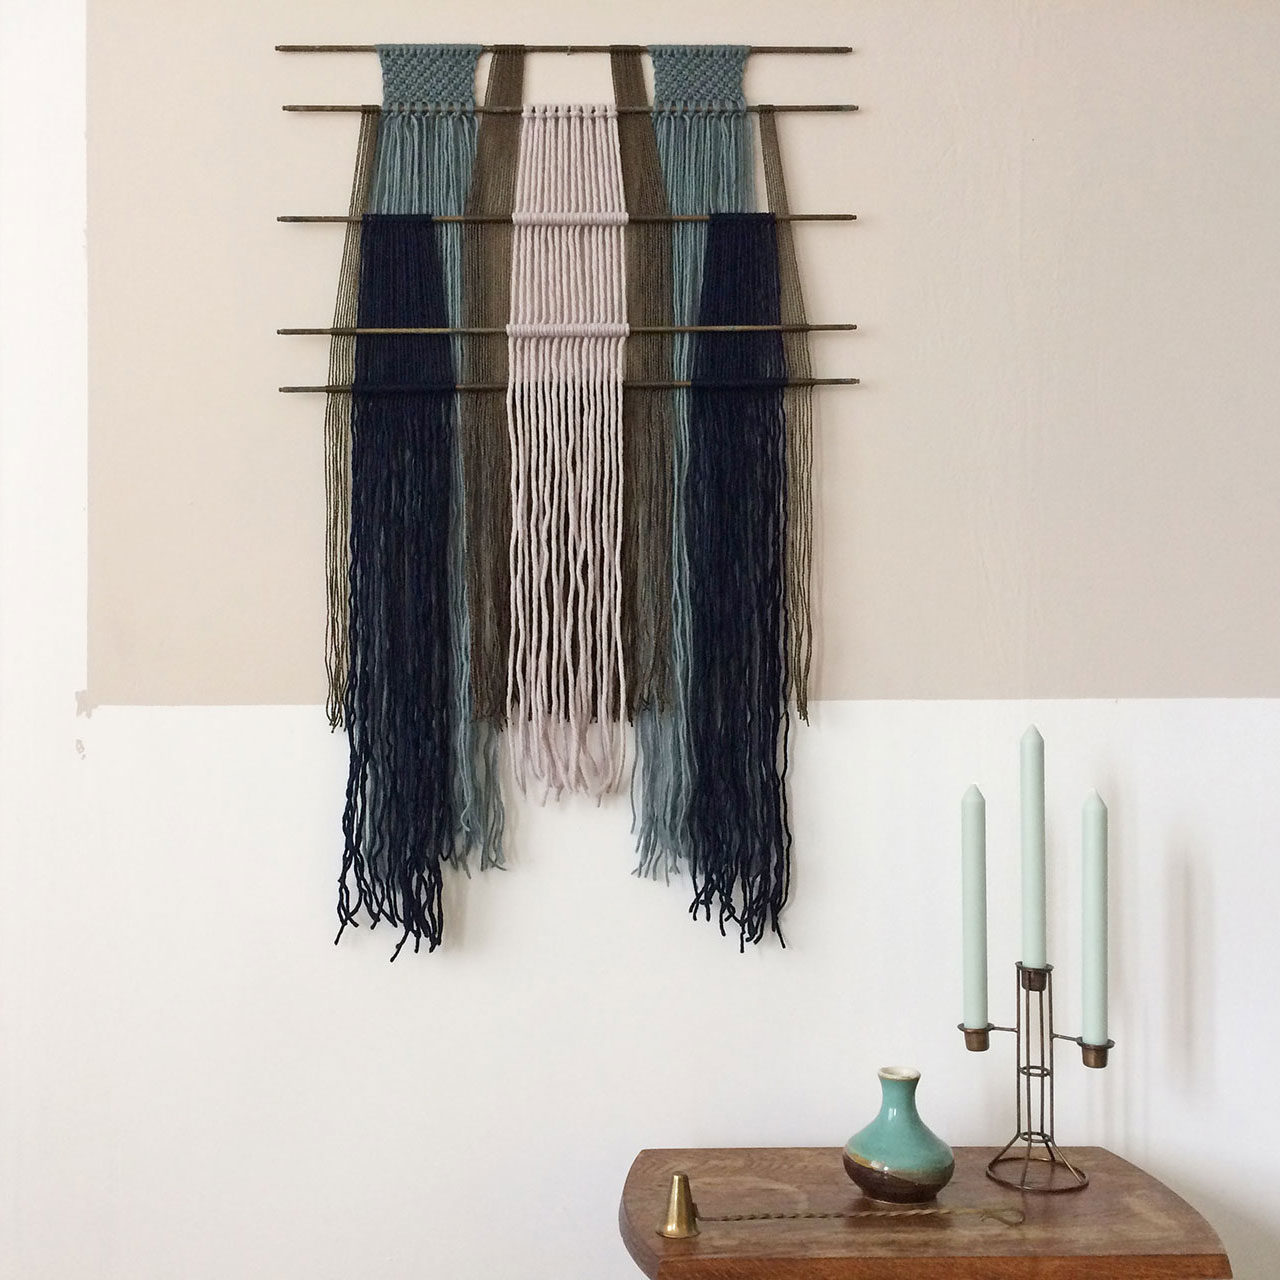 Wall Hangings With Different Dowels 183 Annienke